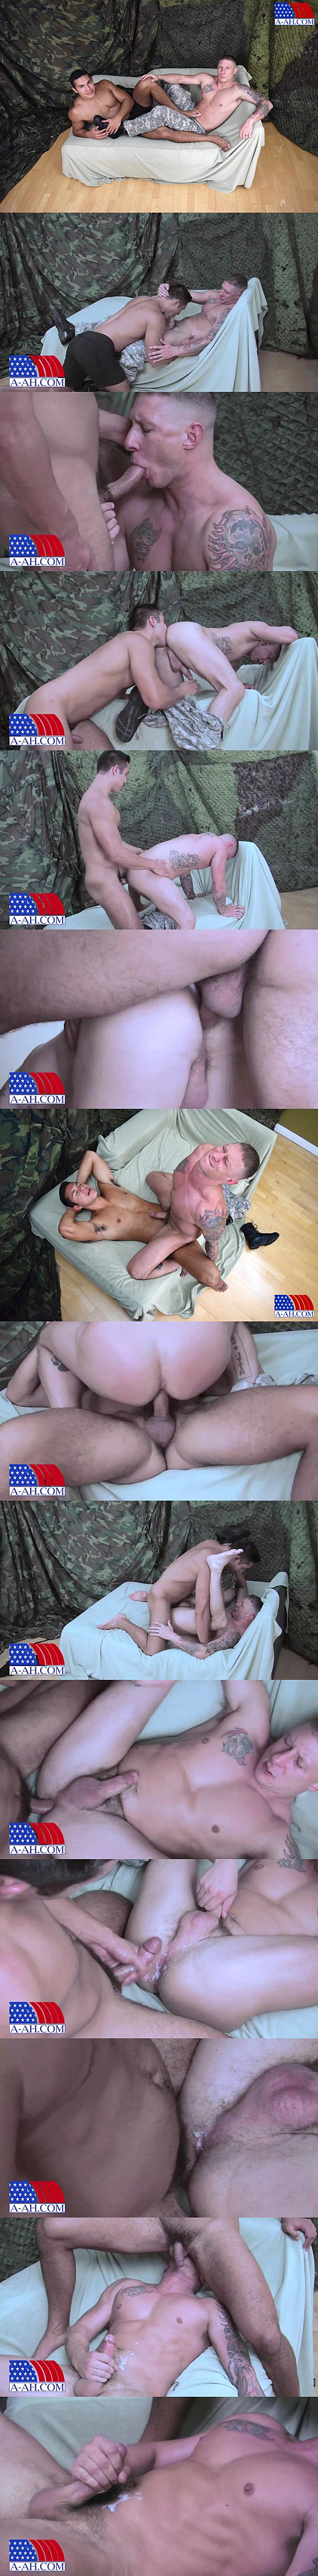 Seth Treston barebacks and breeds masculine stud Tyler Griz in Private Seth Fucks Private Tyler at All-americanheroes 02